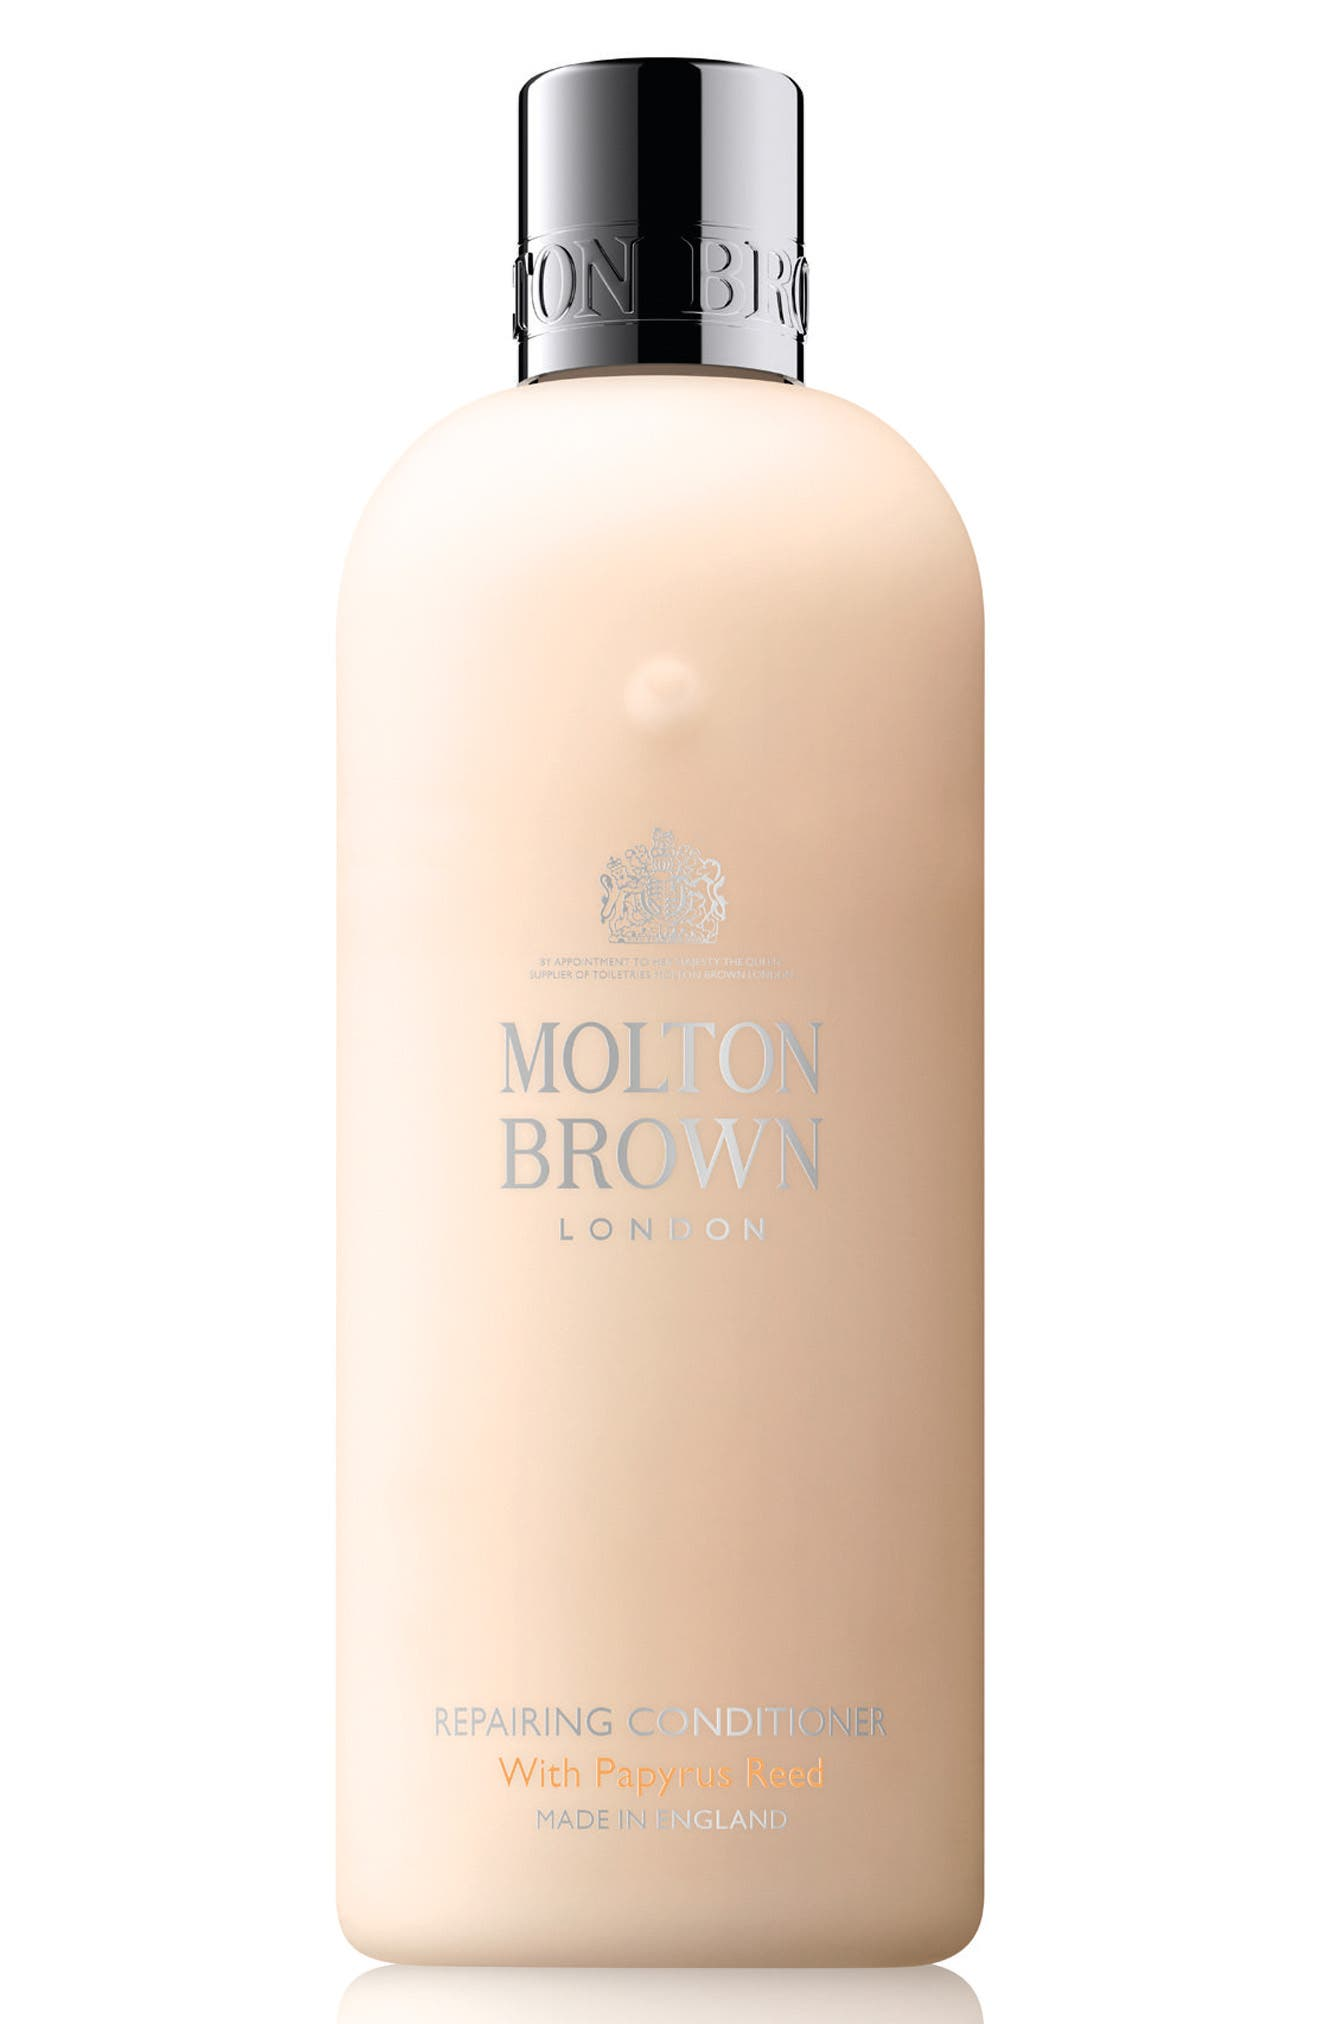 Main Image - MOLTON BROWN London Repairing Conditioner with Papyrus Reed